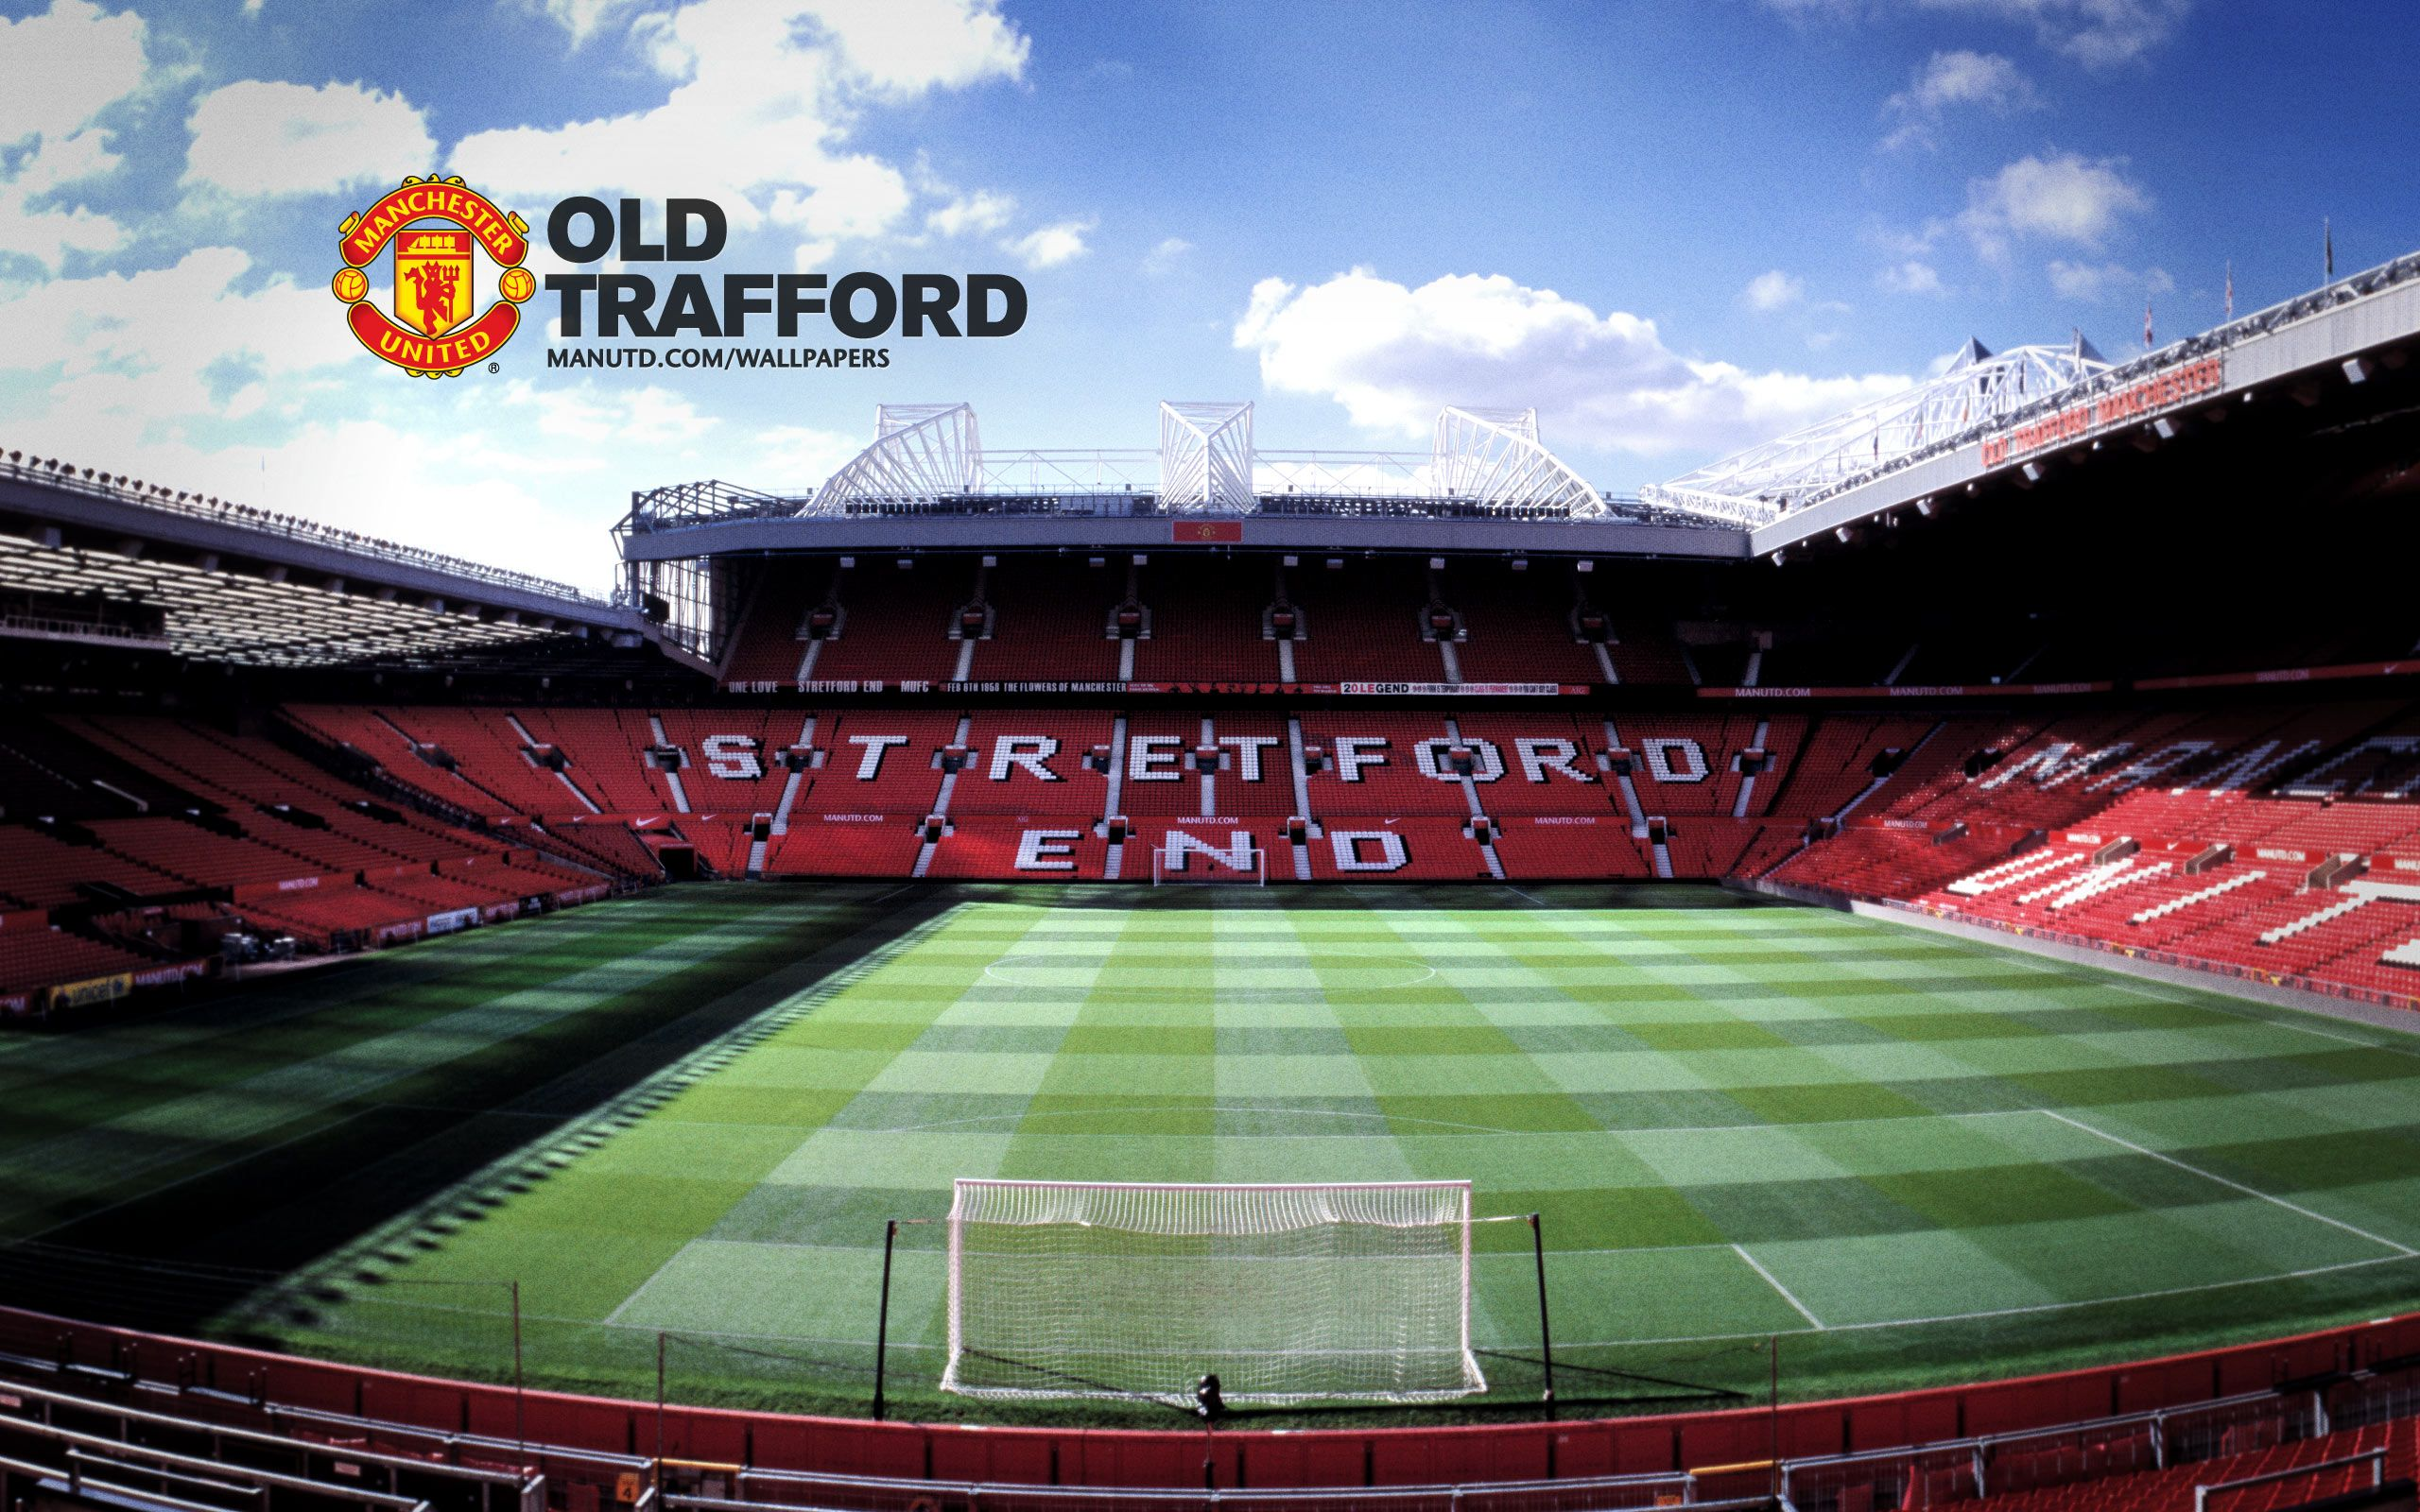 Old Trafford Old Trafford Manchester United Wallpaper Official Manchester United Website